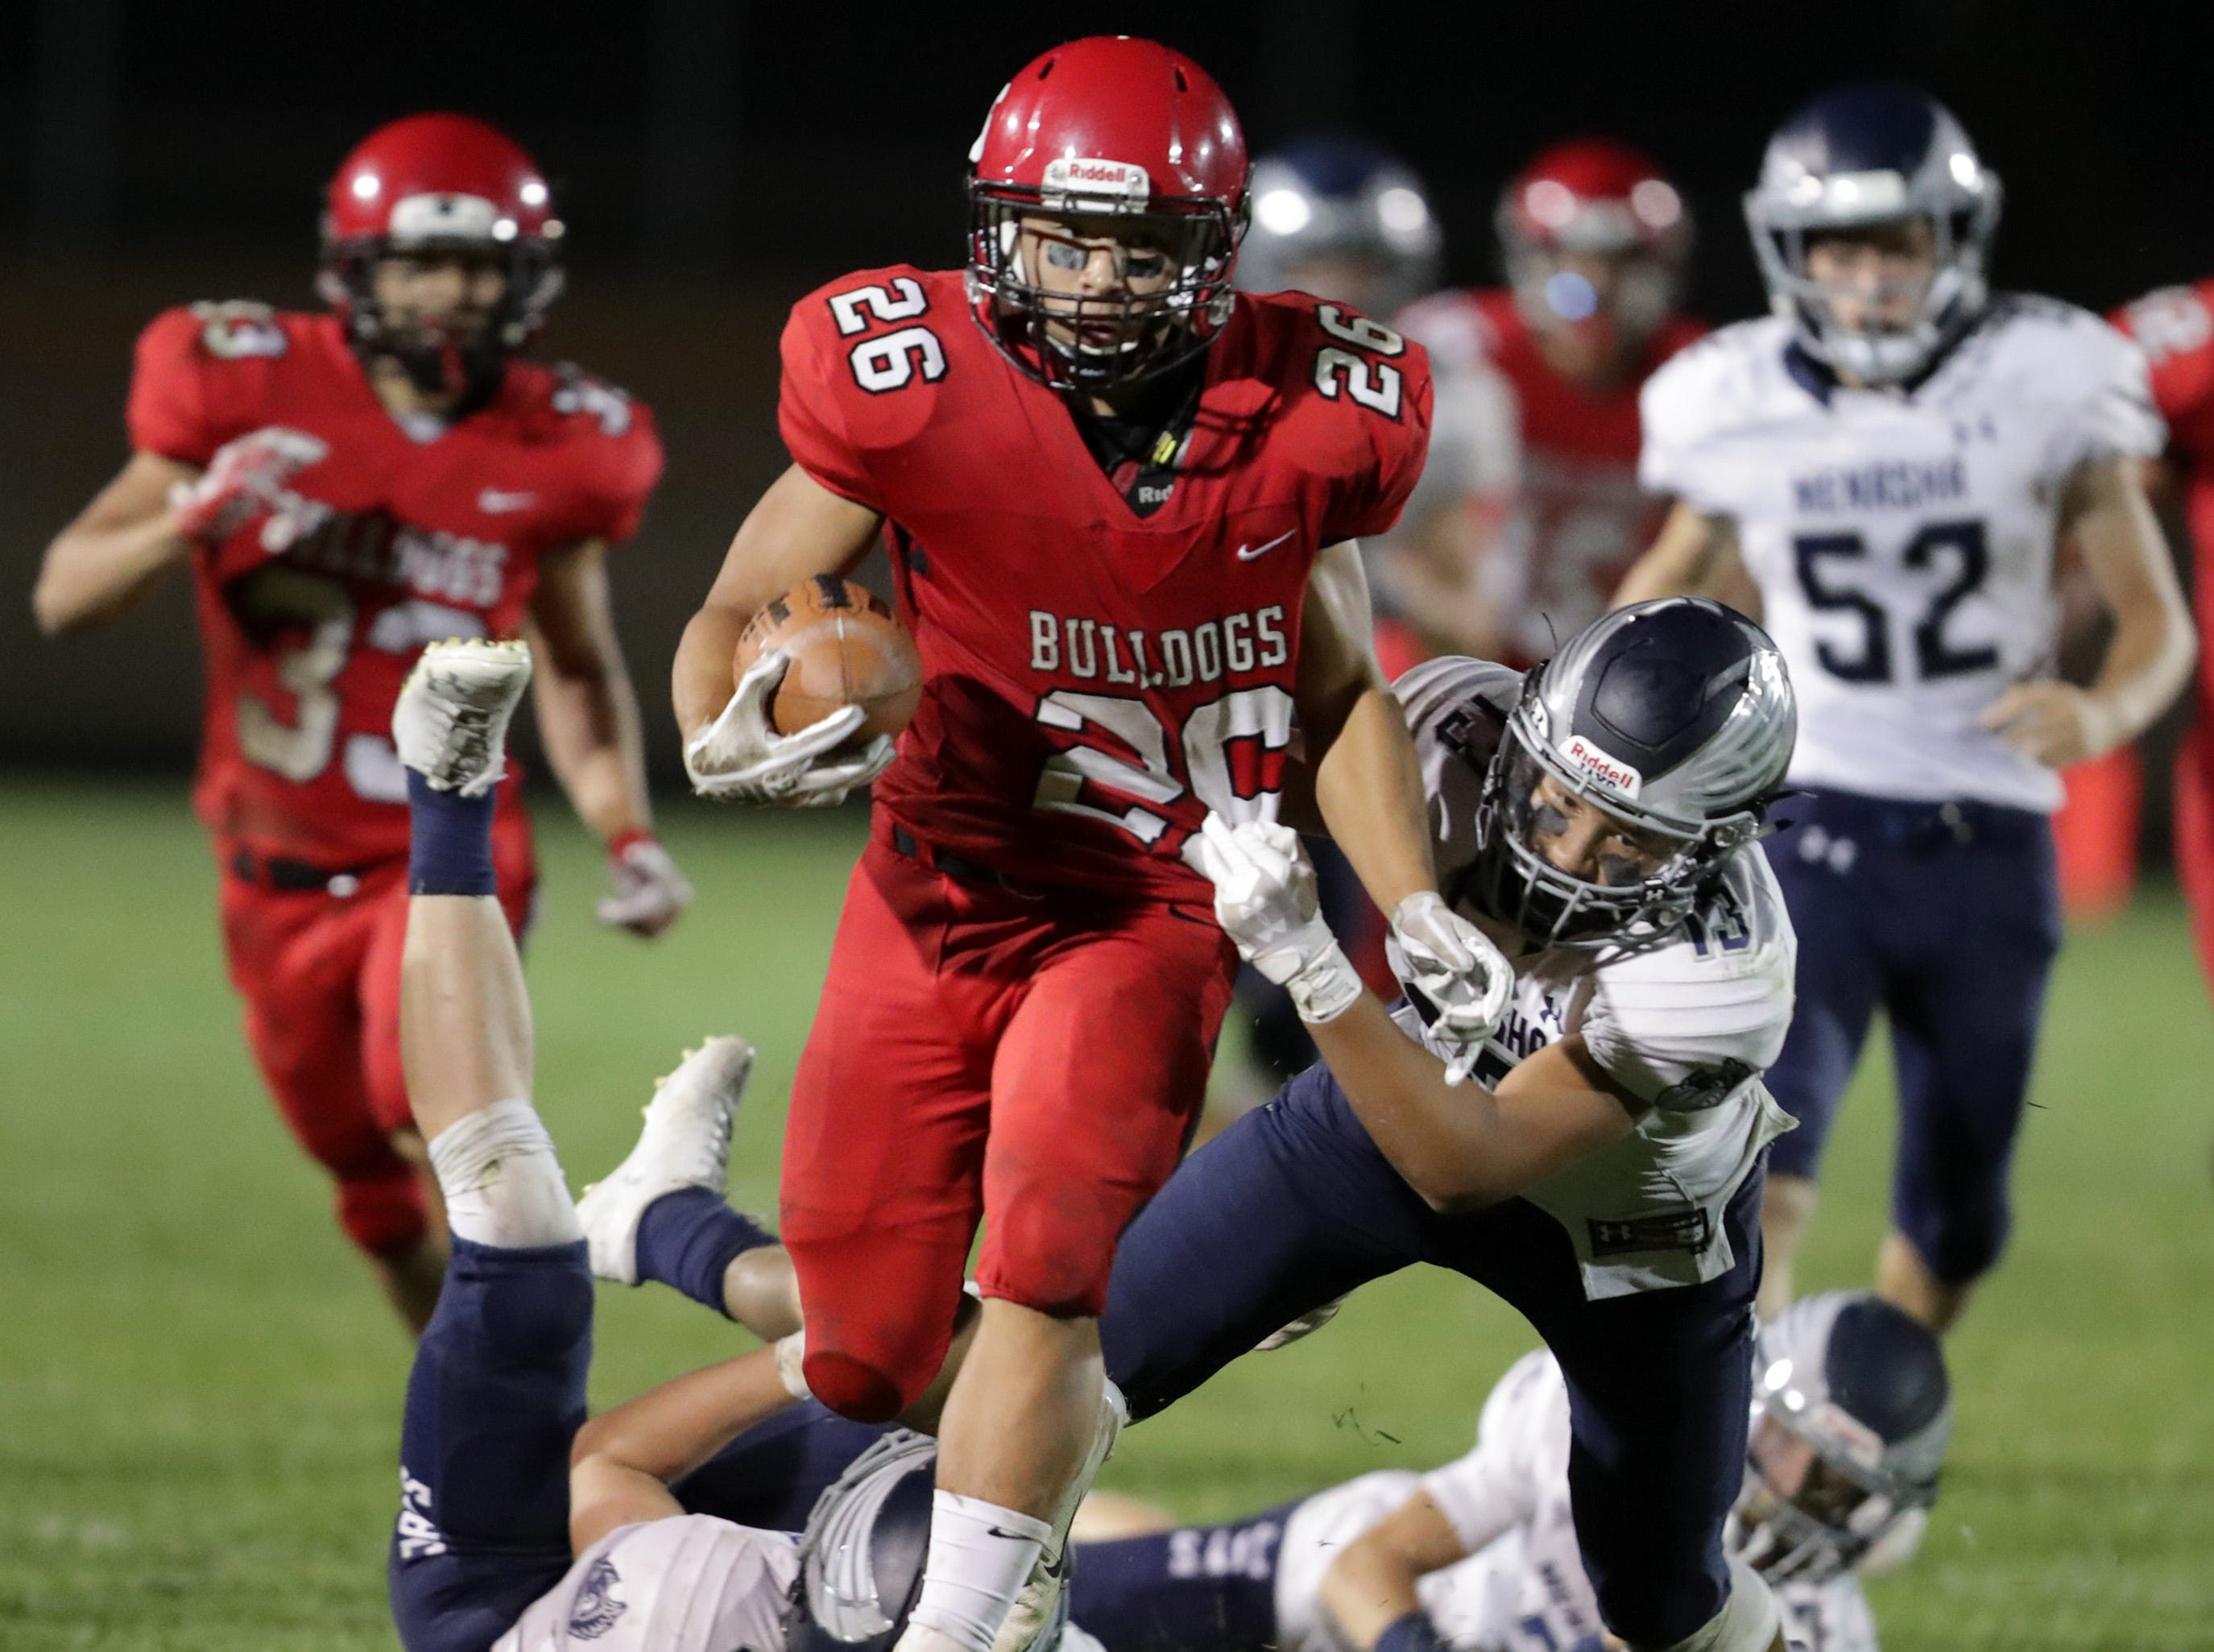 New London High School's #26 Makaio Harn against Menasha High School's #13 Leviathian during their football game on Friday, September 14, 2018, New London, Wis. Menasha defeated the Bulldogs 34 to 28.